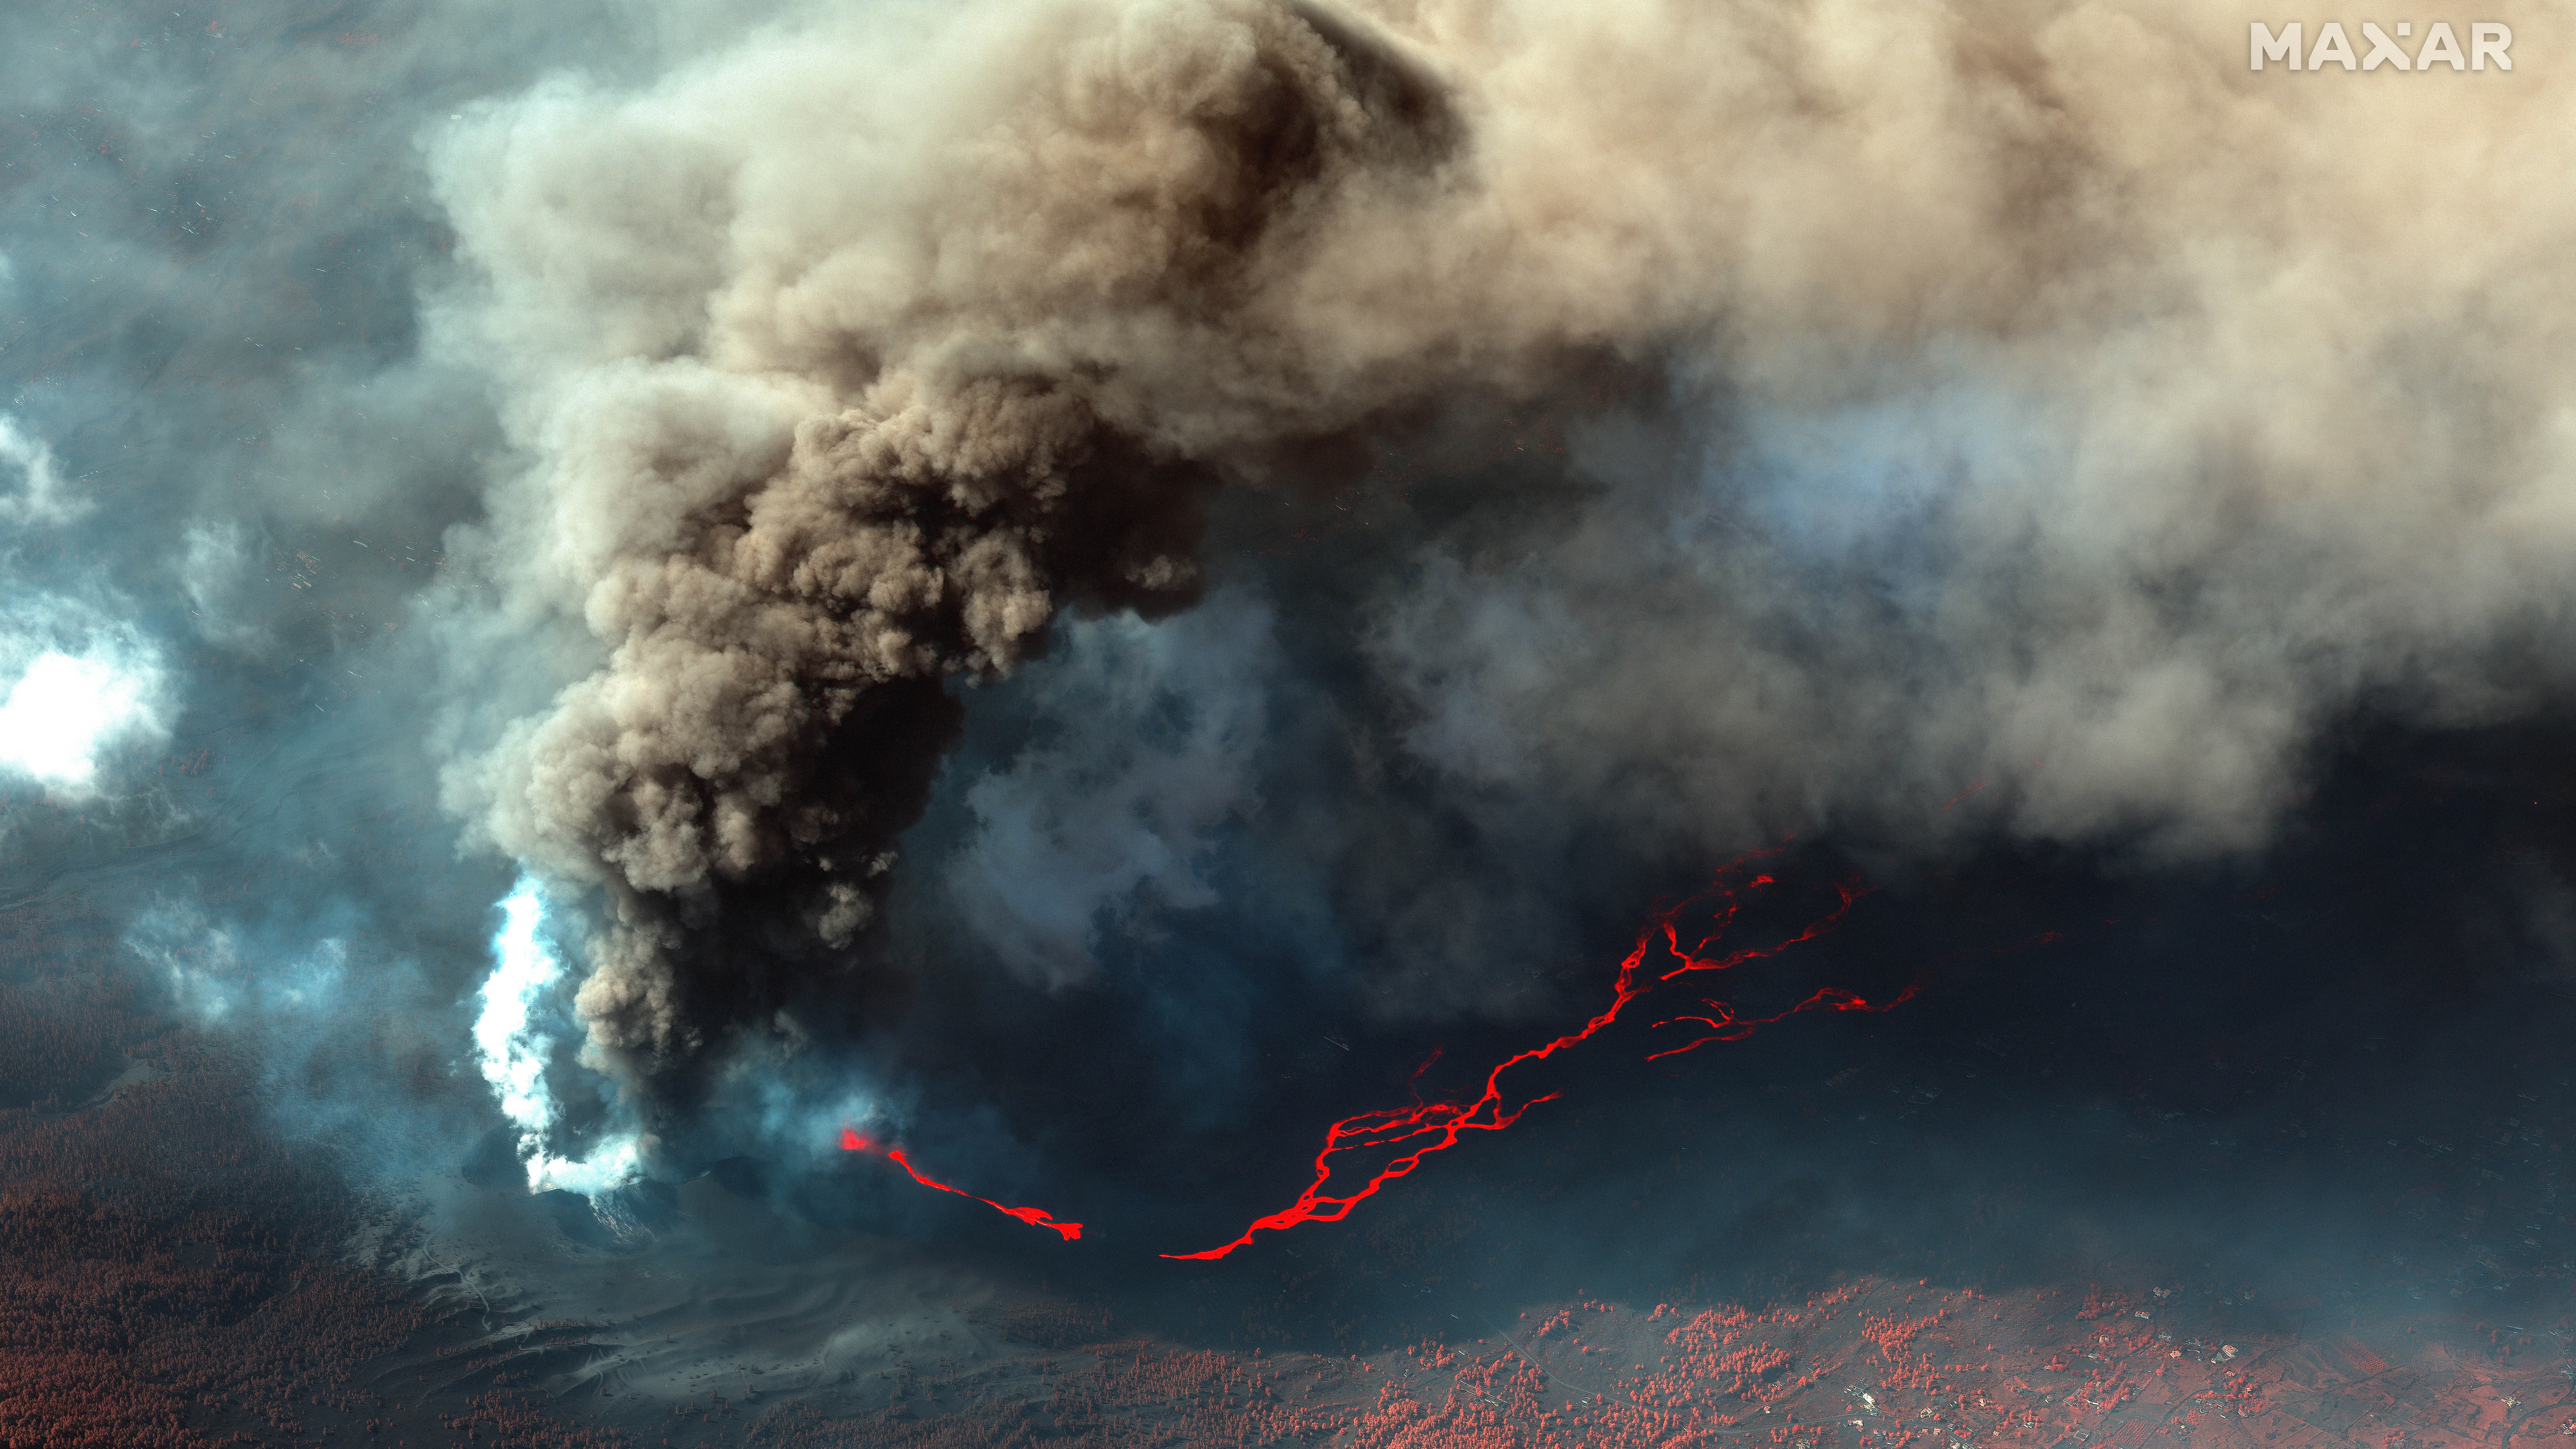 Vast lava rivers from La Palma volcano eruption show no signs of stopping in new satellite photos